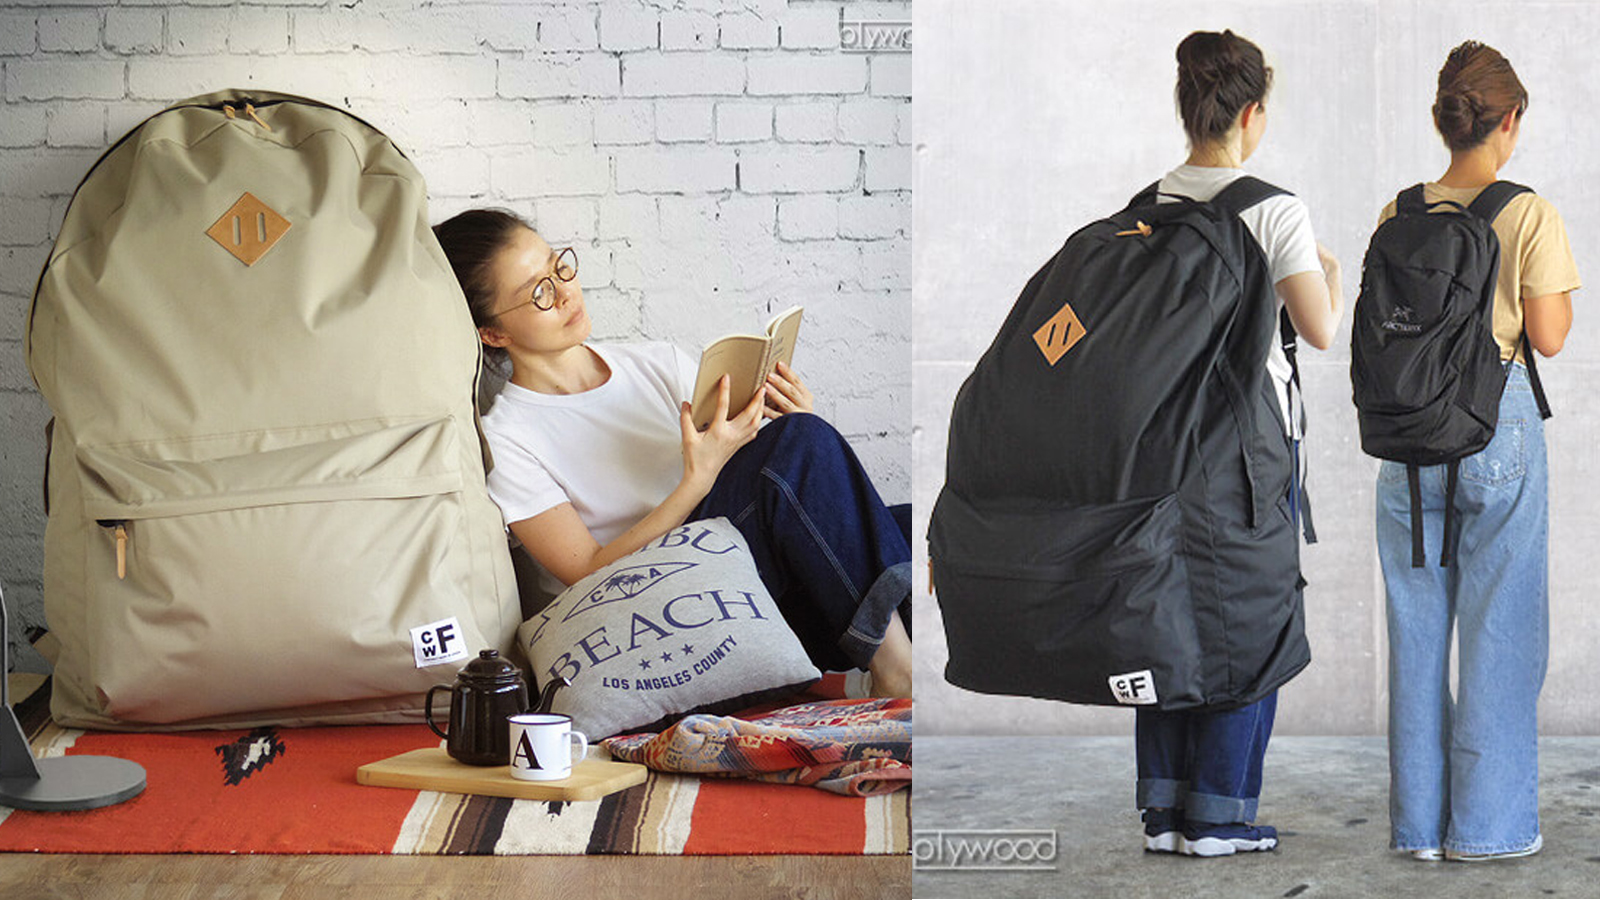 Are Cwf S Absurdly Large Japanese Backpacks A Real Fashion Trend